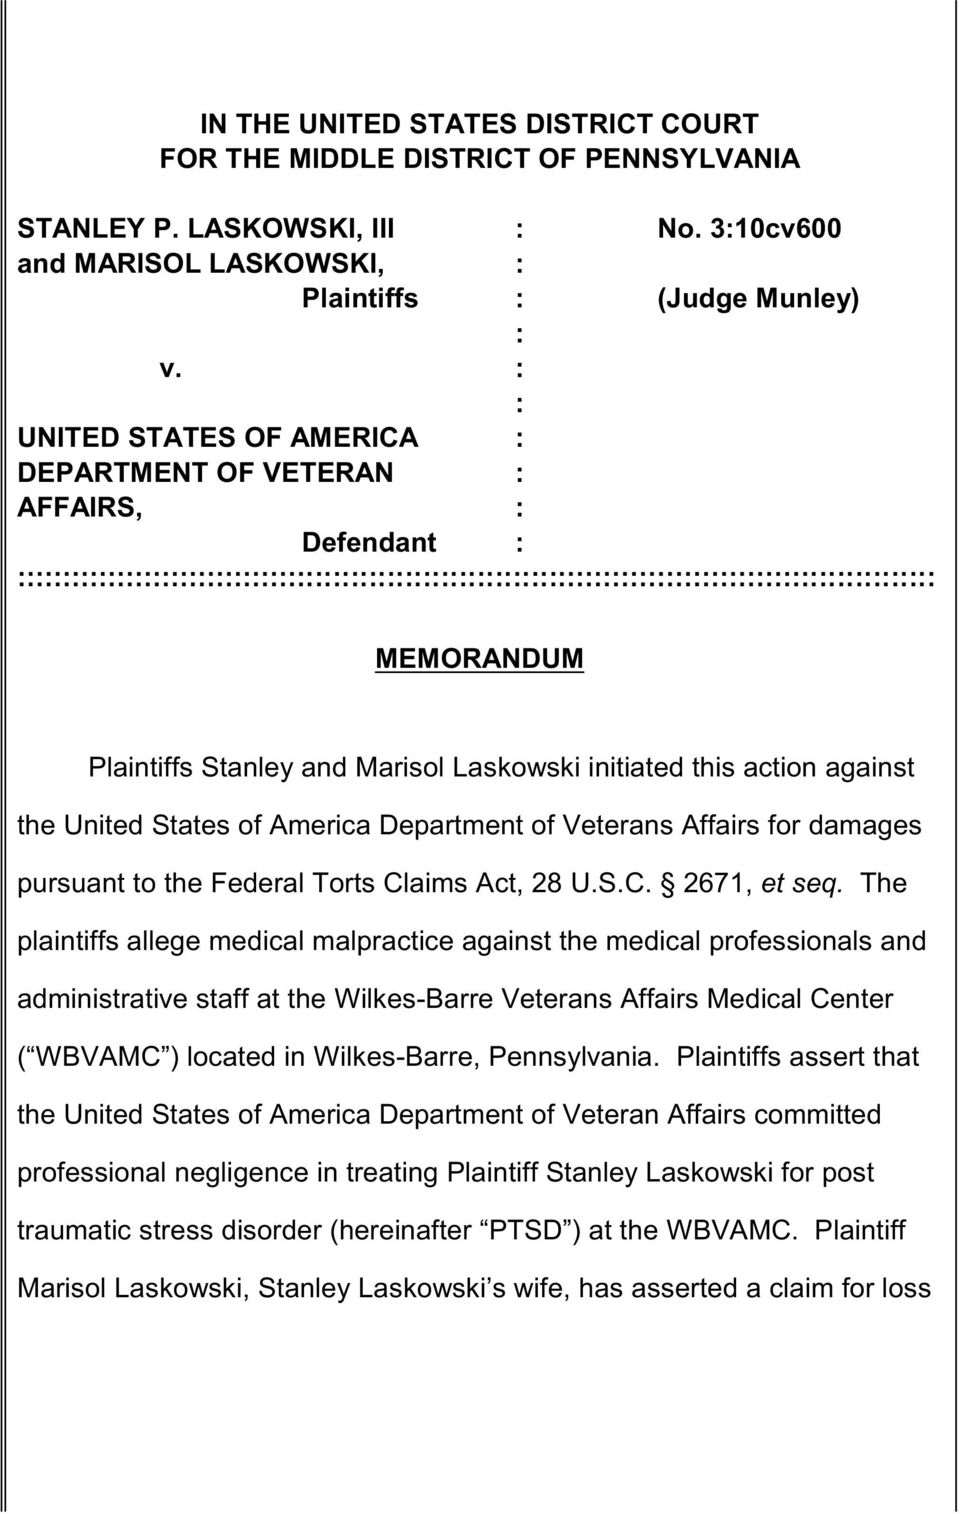 Plaintiffs Stanley and Marisol Laskowski initiated this action against the United States of America Department of Veterans Affairs for damages pursuant to the Federal Torts Claims Act, 28 U.S.C. 2671, et seq.